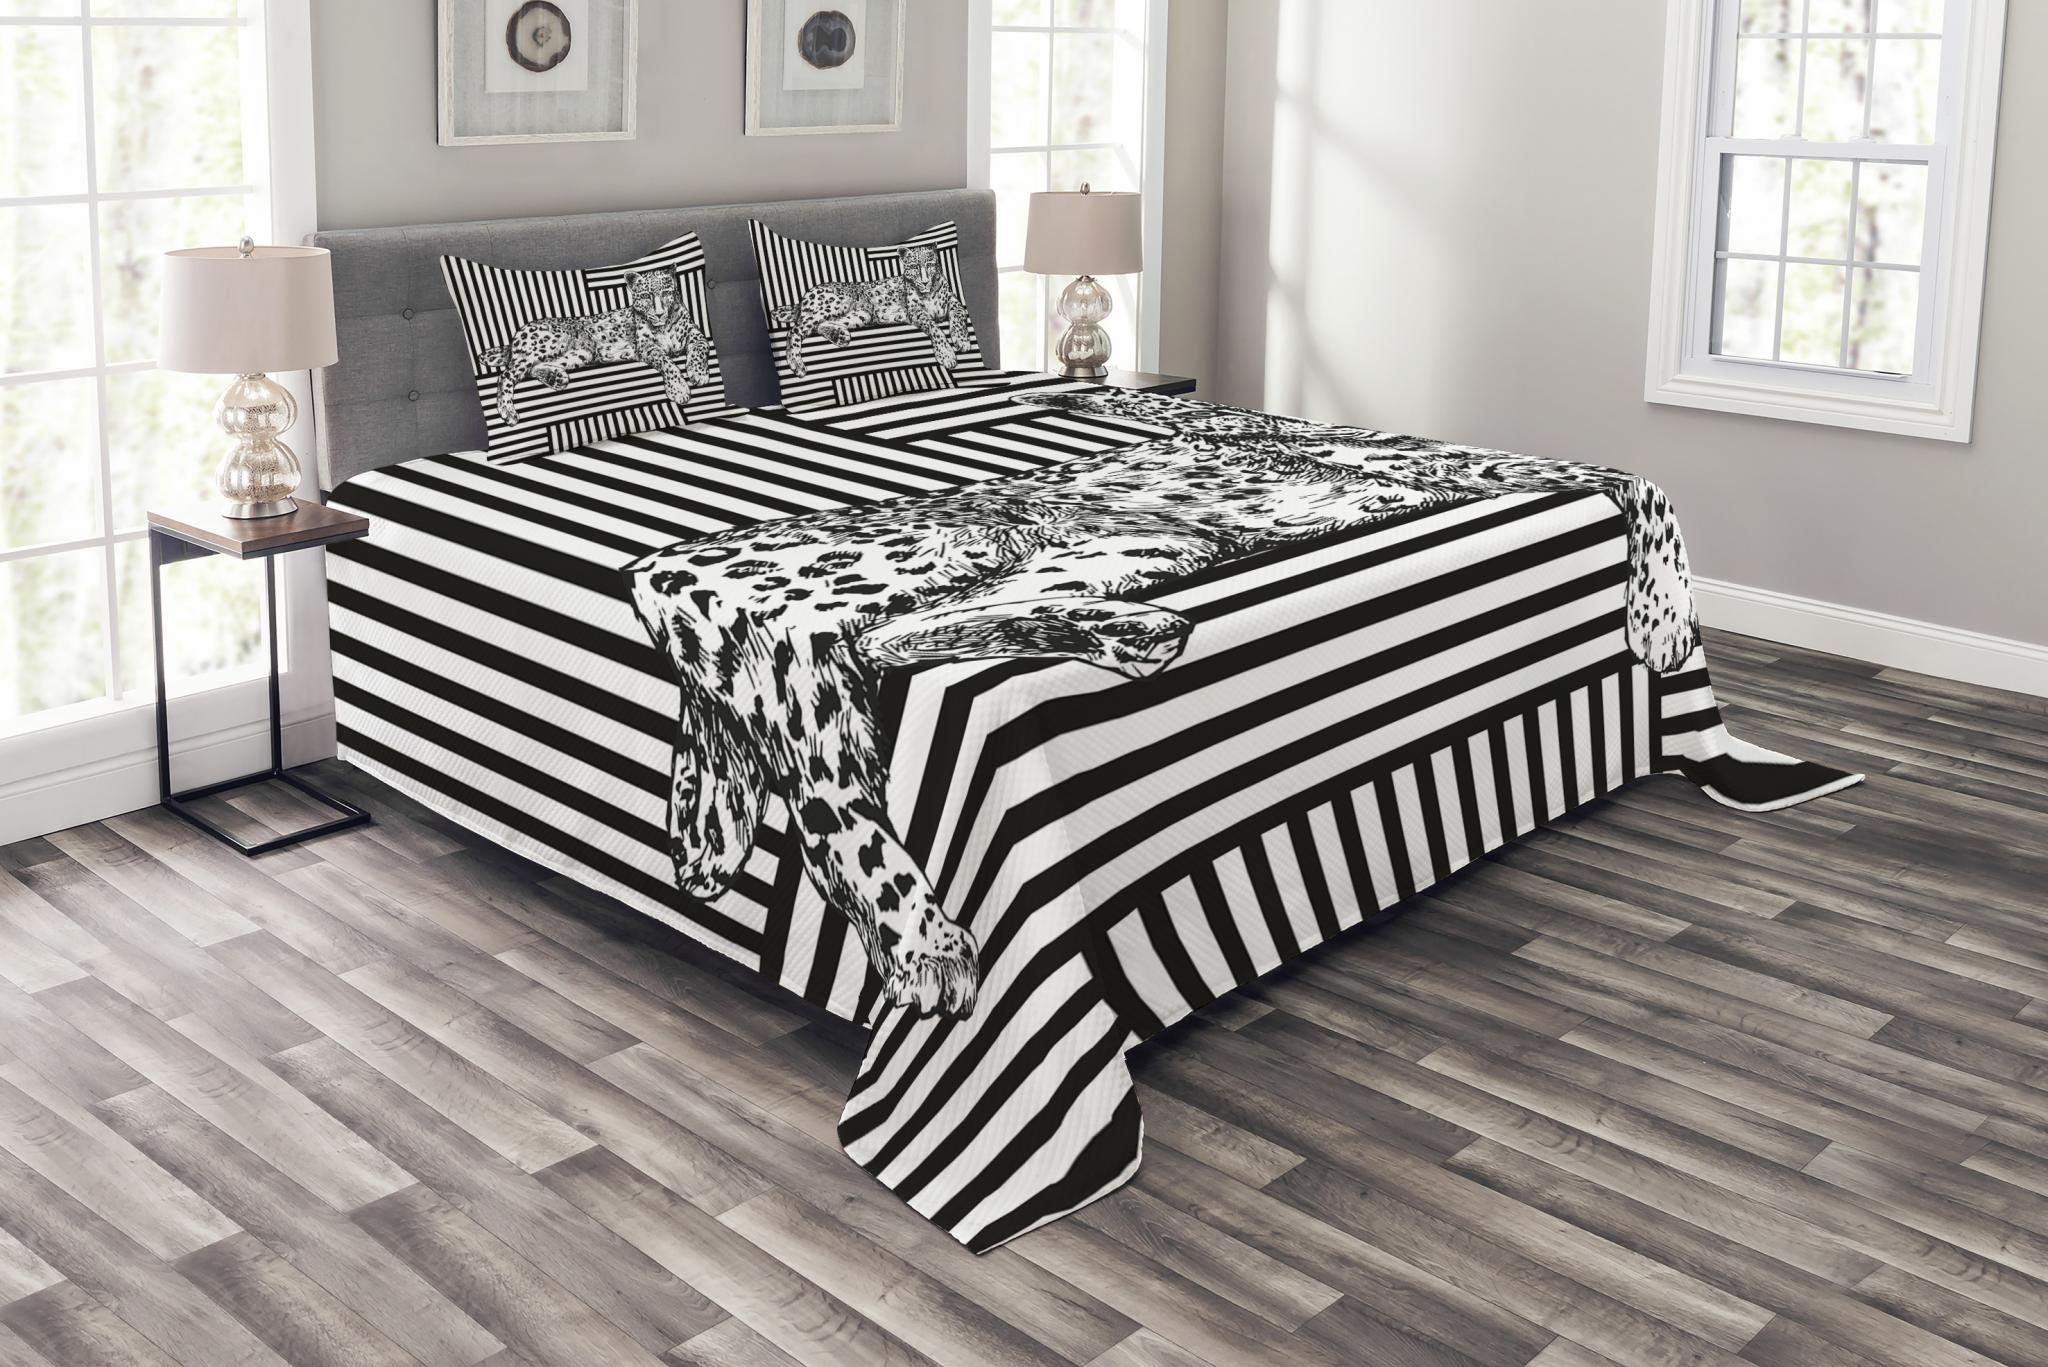 Lunarable Animal Bedspread Set Queen Size, Wildlife Theme The Leopard Lying on a Striped Background Illustration Print, Decorative Quilted 3 Piece Coverlet Set with 2 Pillow Shams, Black and White